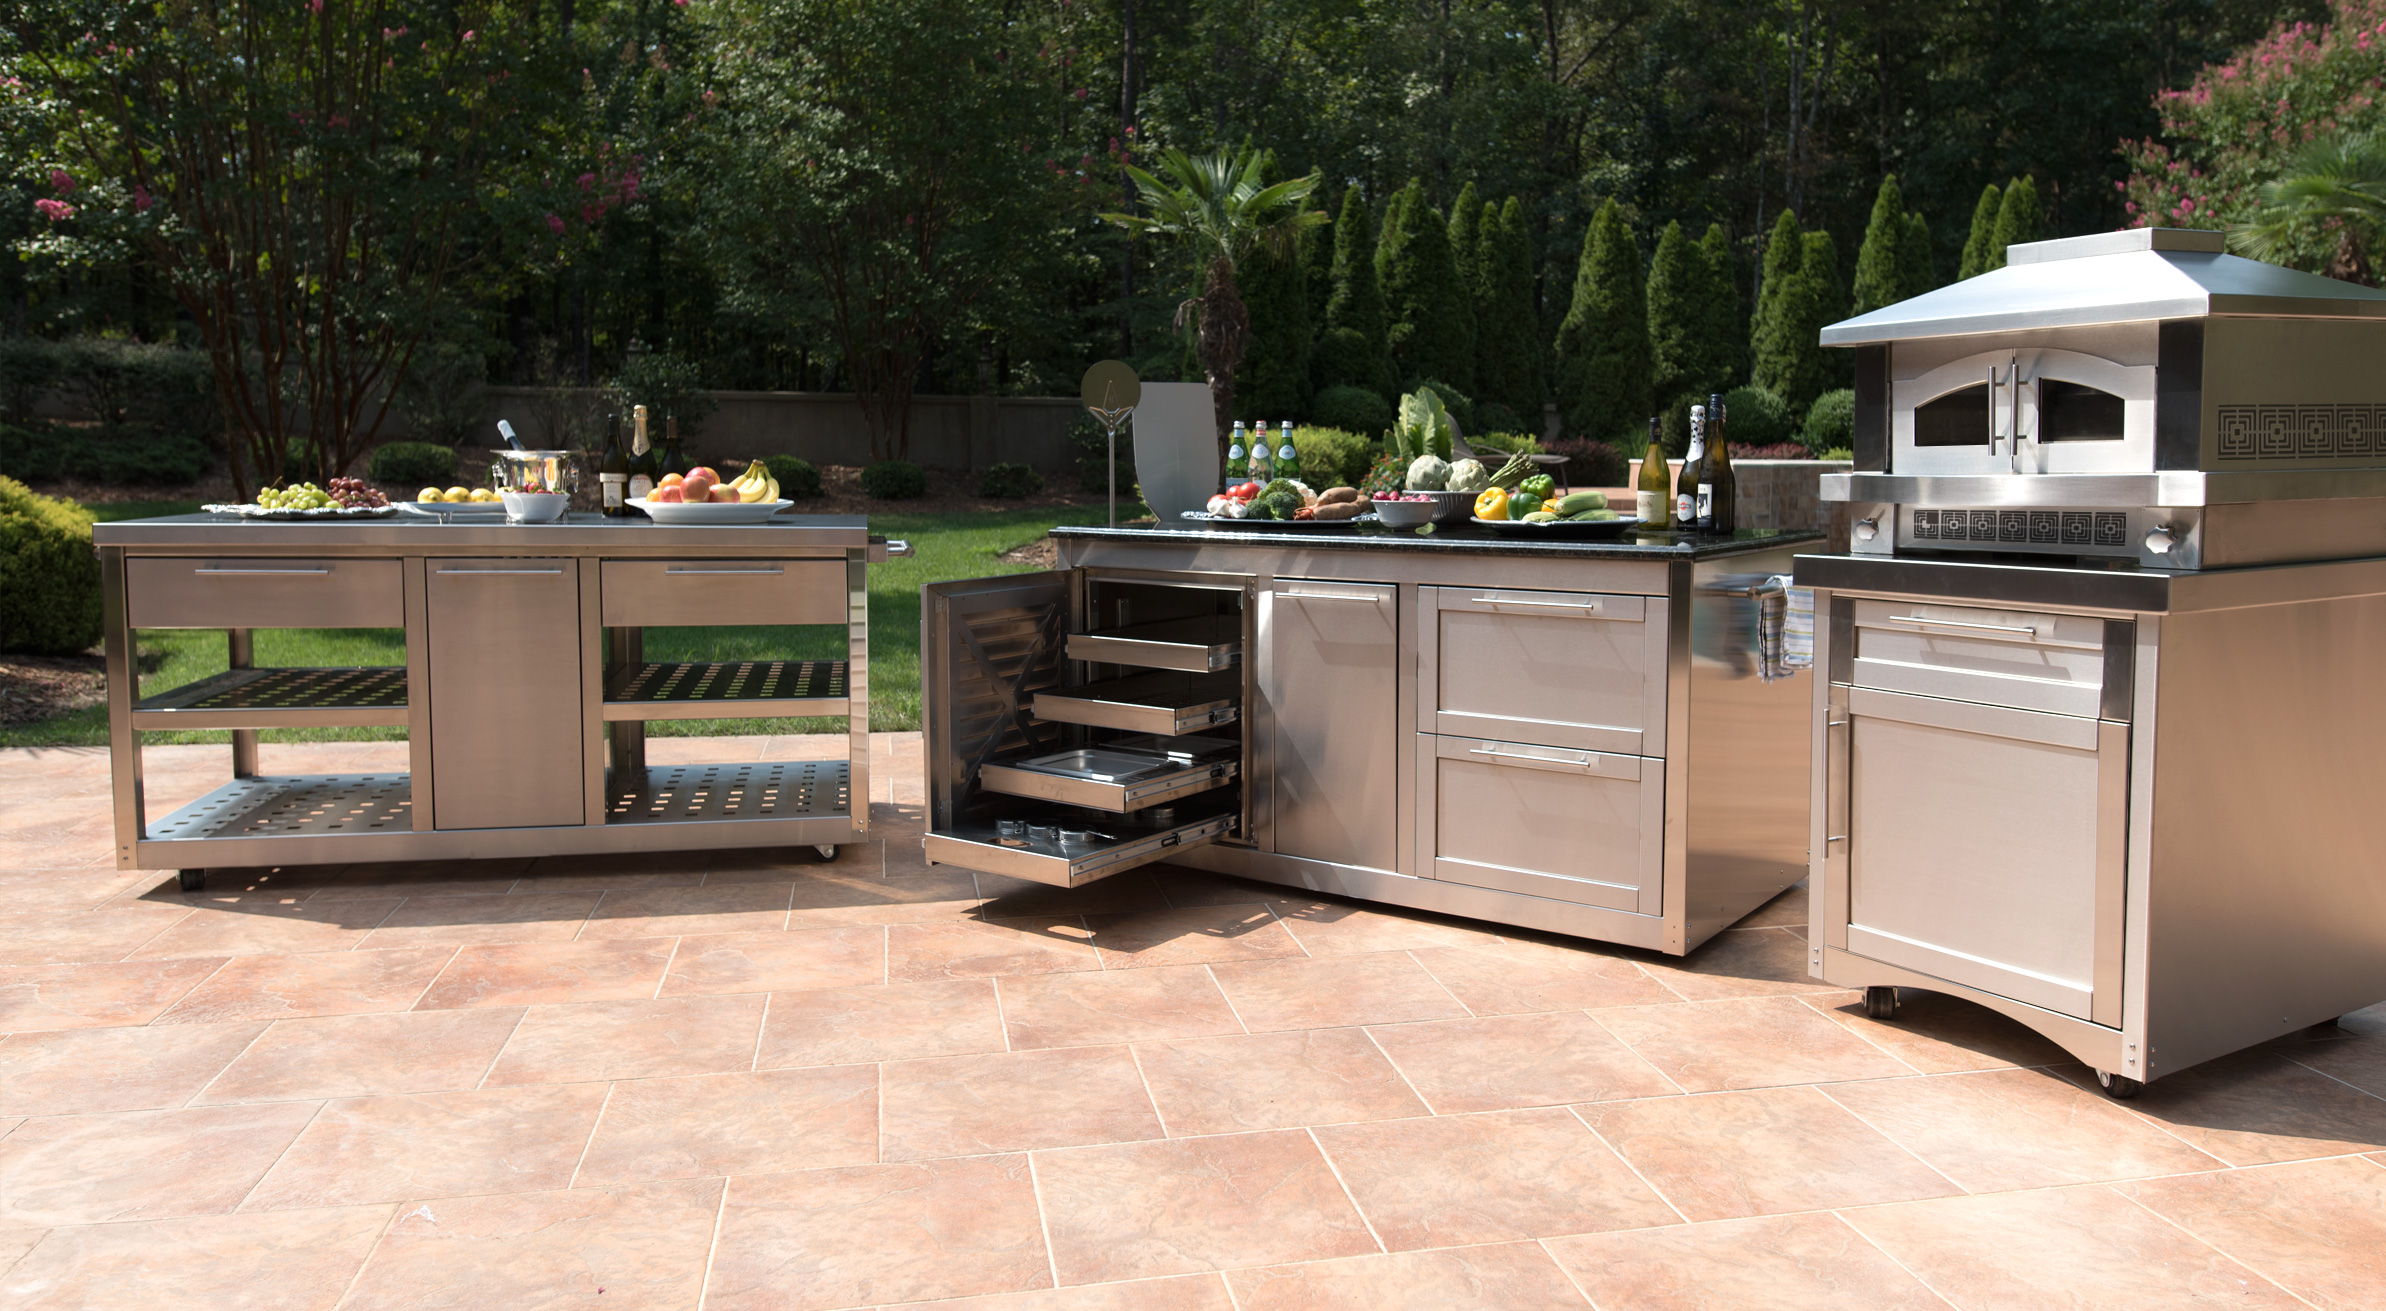 Outdoor Stainless Steel Cabinets Stainless Steel Outdoor Kitchen Cabinets John Michael